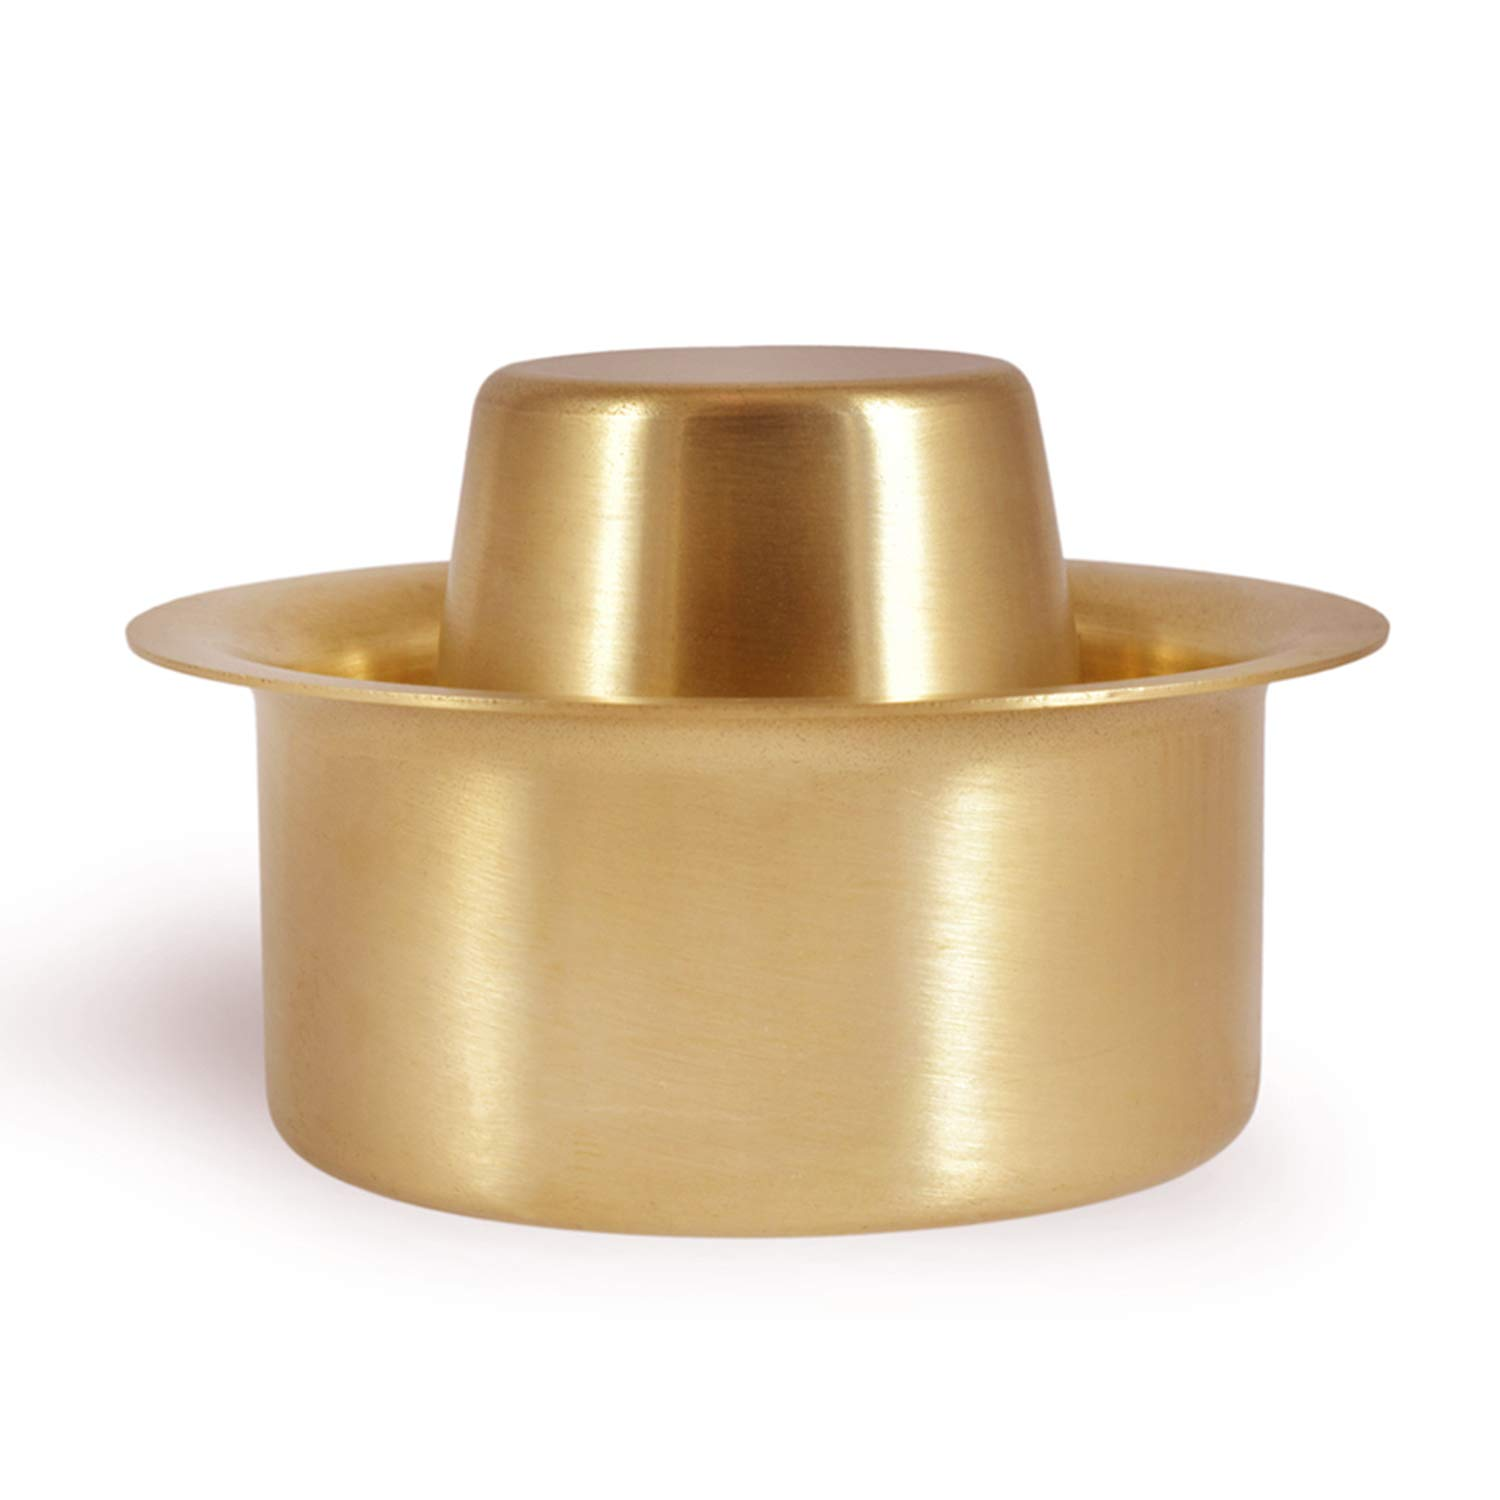 Sidapur Brass Dabara Set - High Quality Brushed Matte Finish - For South Indian Filter Coffee - 120ml